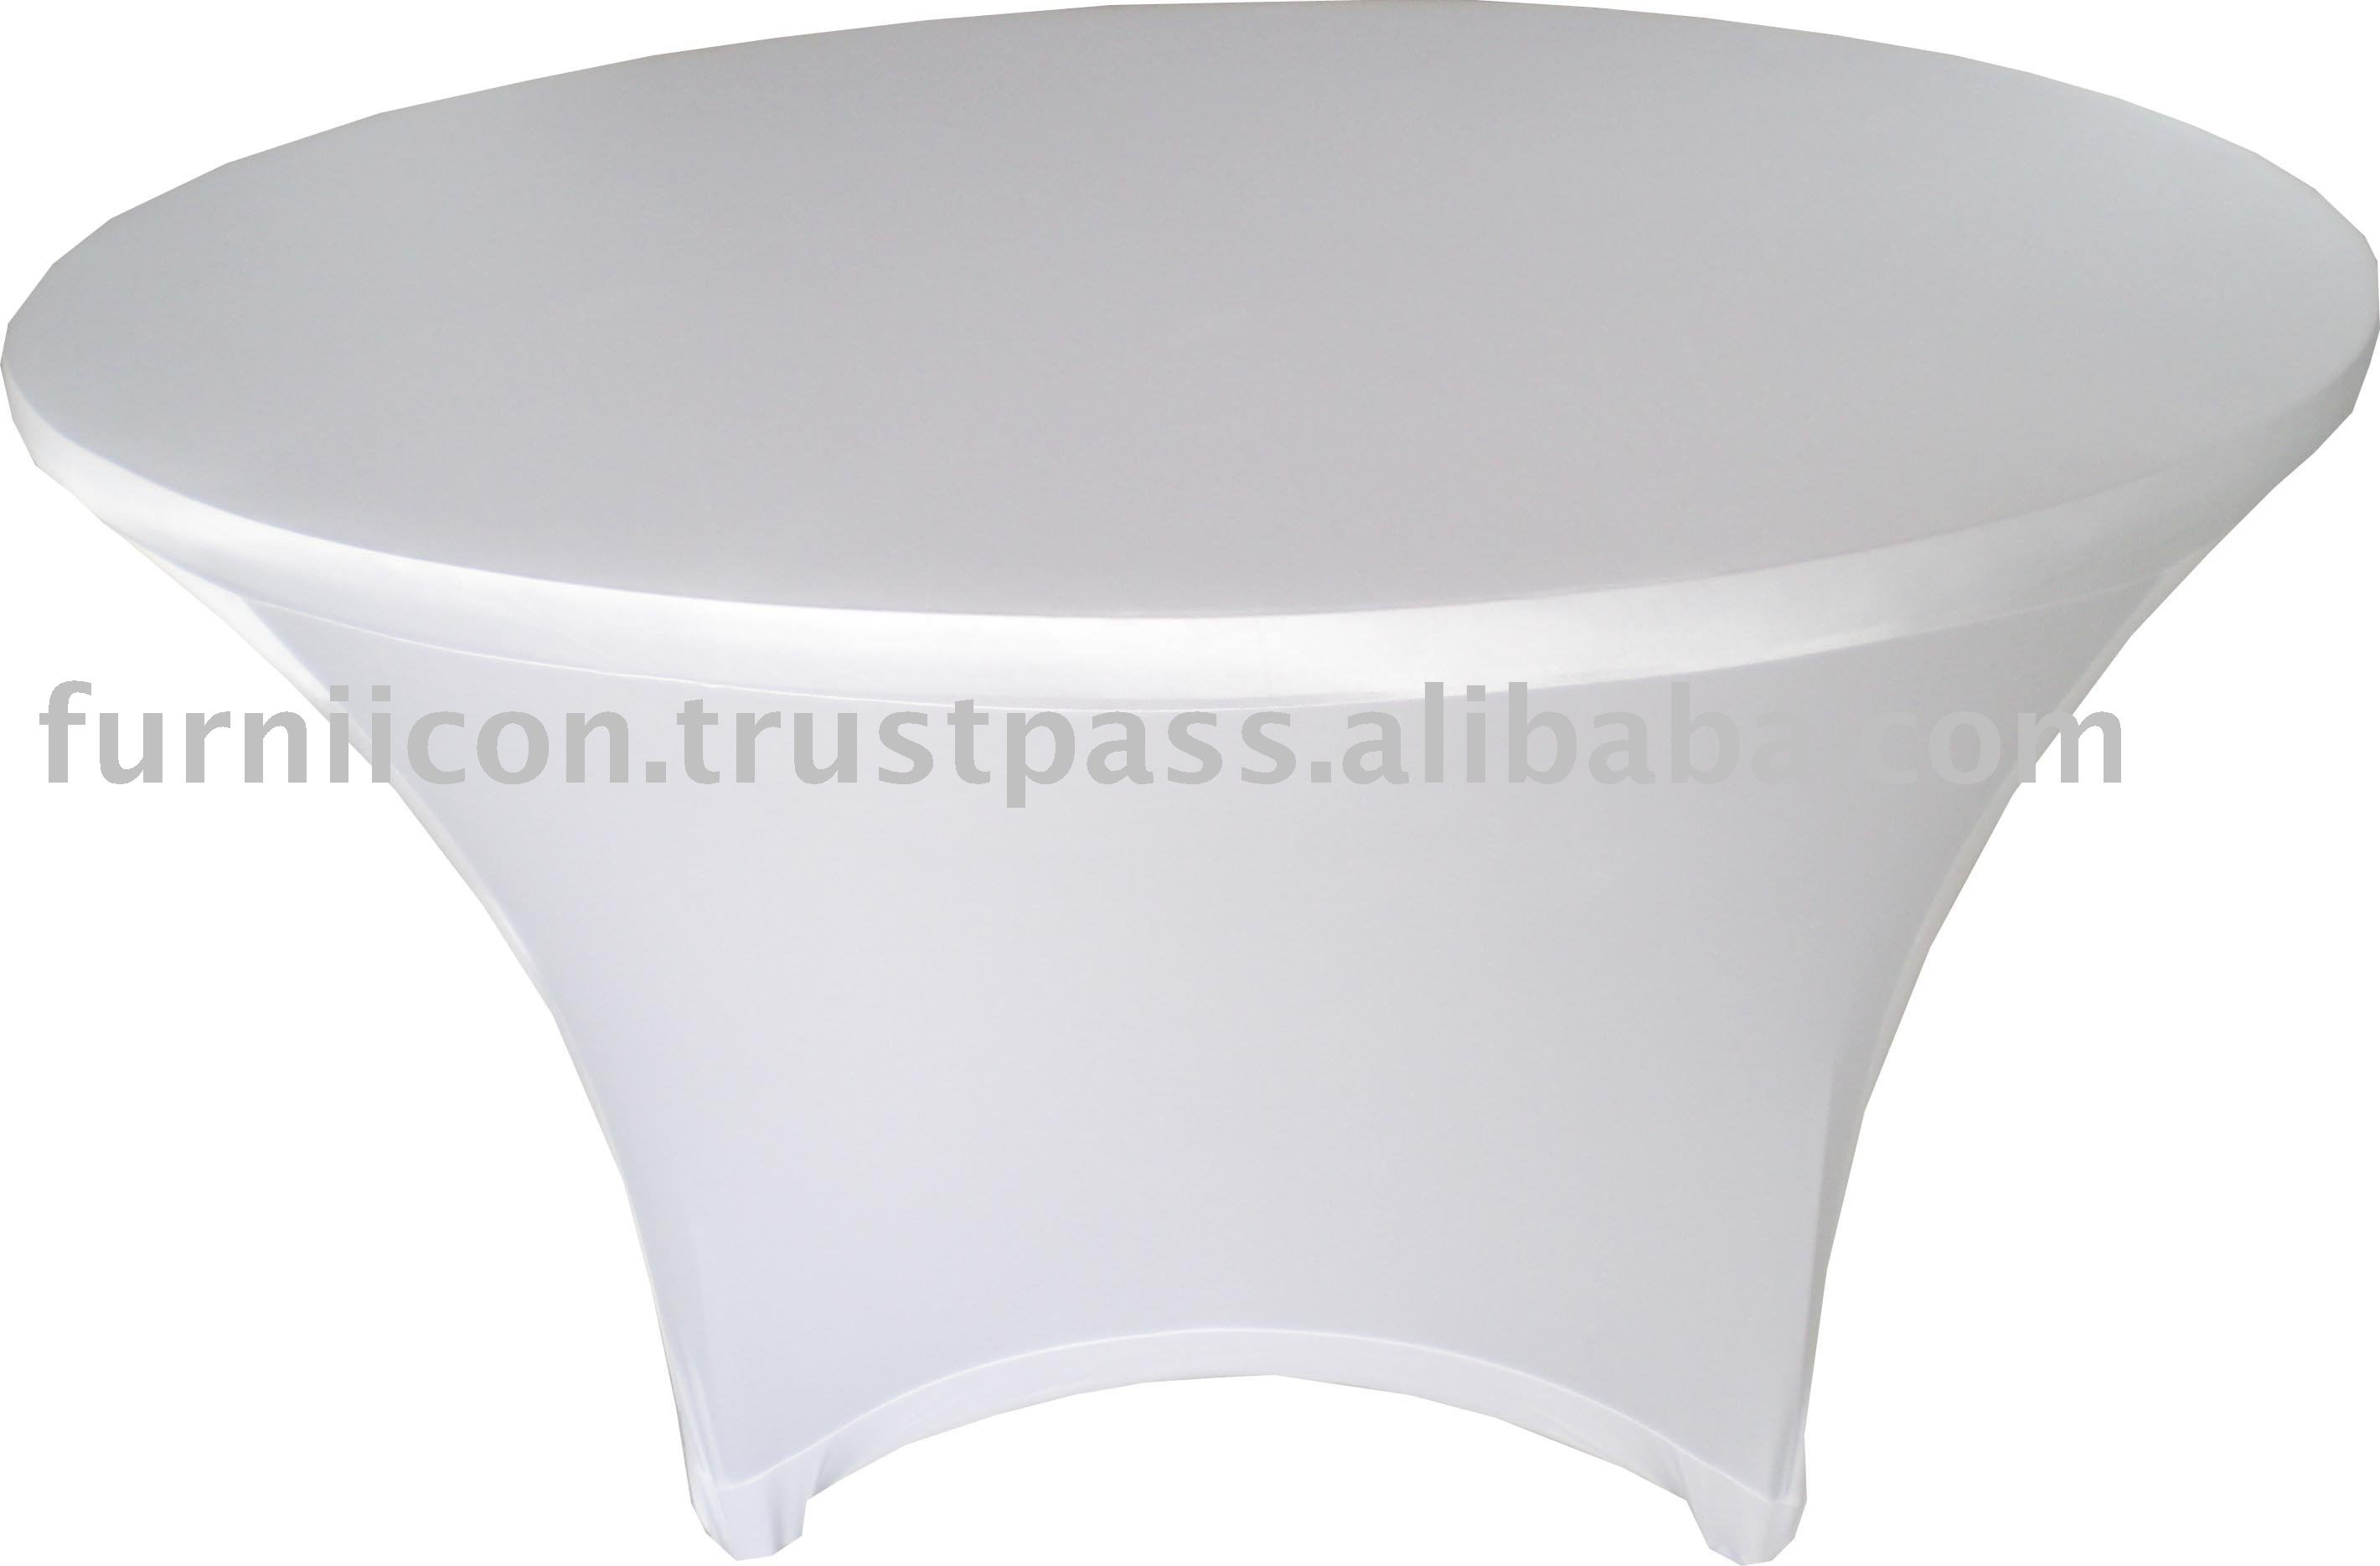 Round Plastic Table Covers With Elastic Lycra Spandex Round Table Cover Buy Stretch Spandex Round Table